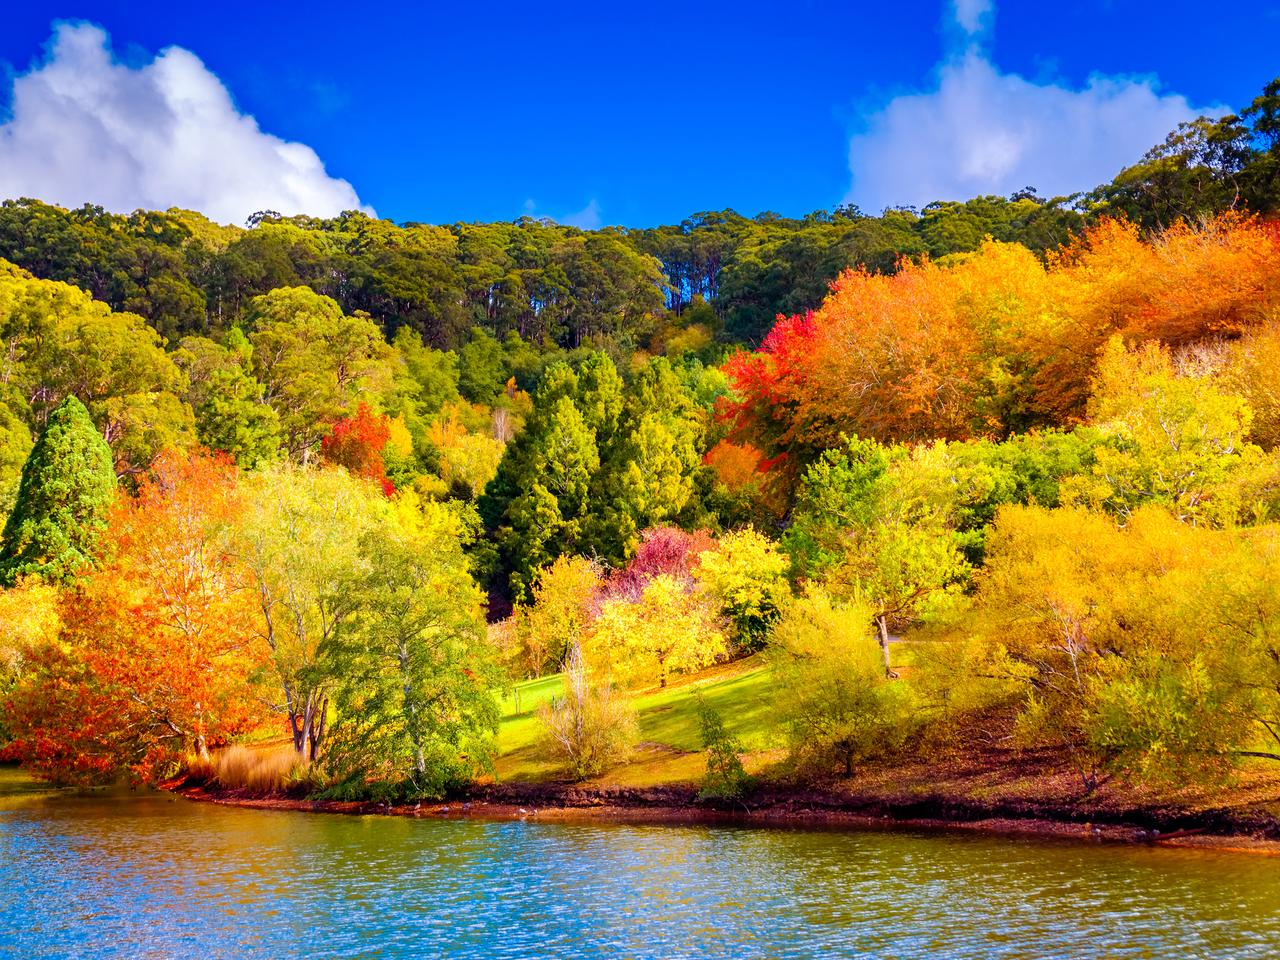 Colorful Australian autumn in Mount Lofty, Adelaide Hills, South Australia